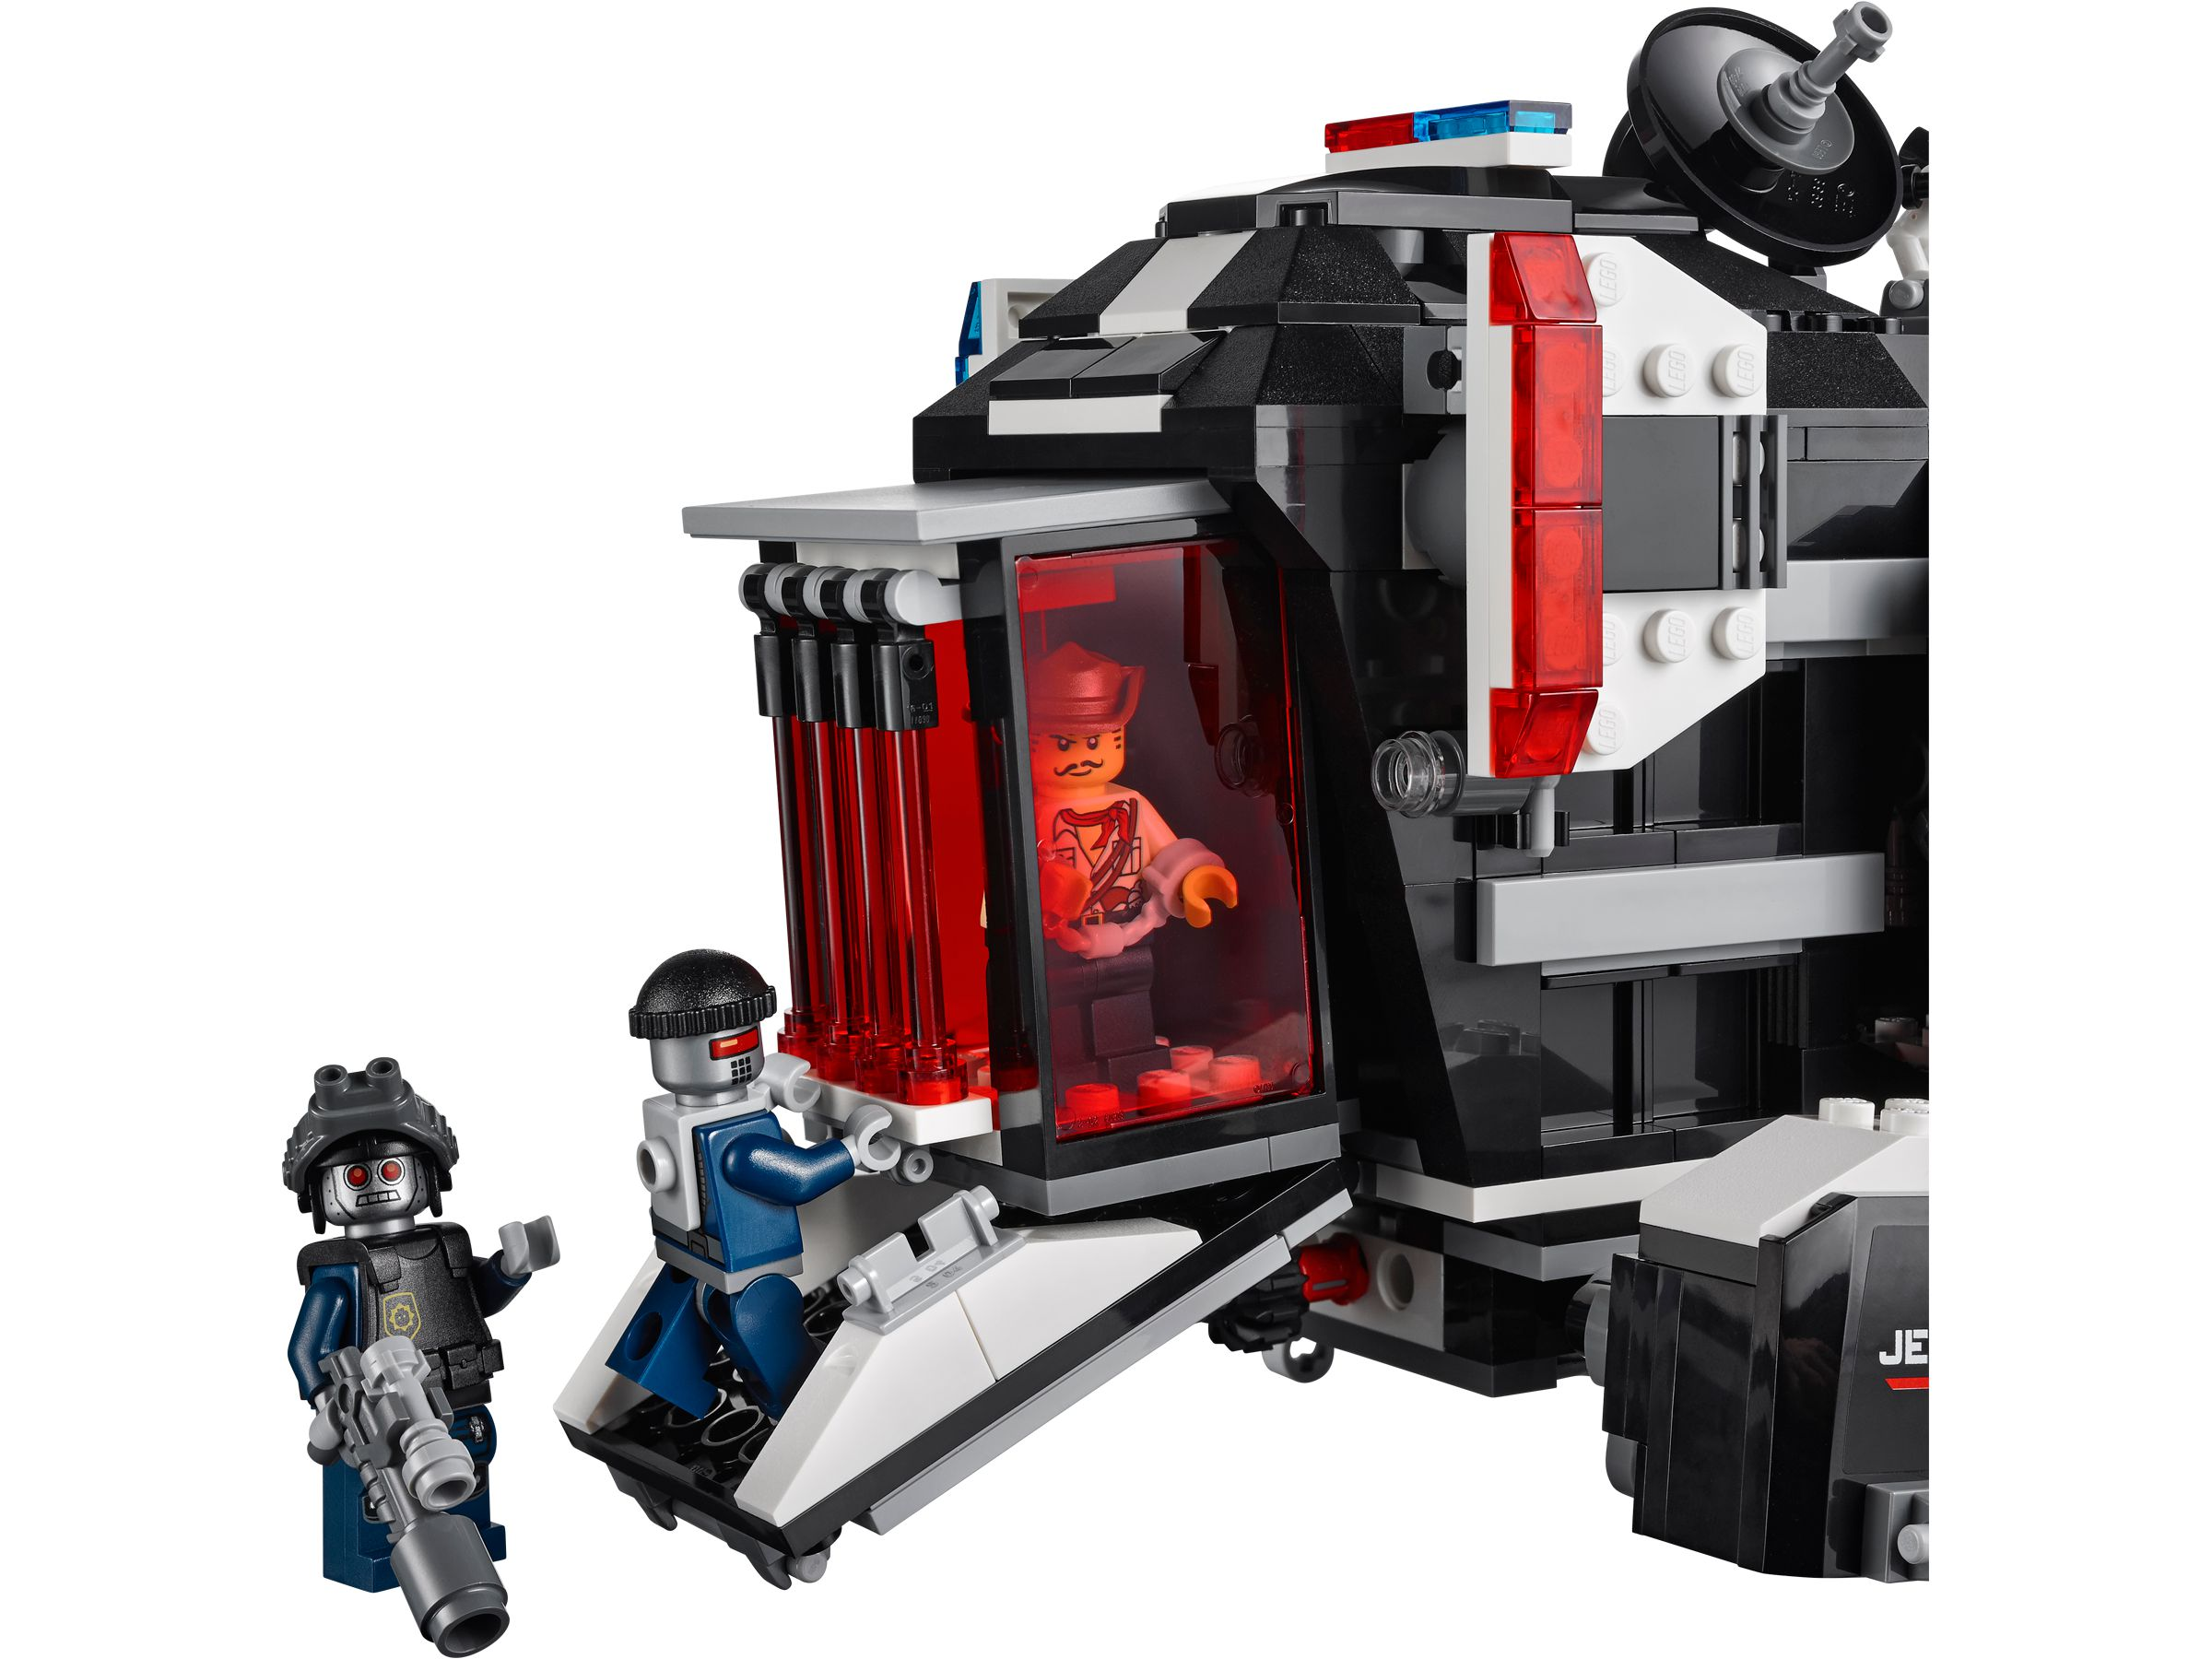 LEGO The LEGO Movie 70815 Raumschiff der Super-Geheimpolizei LEGO_70815_alt4.jpg